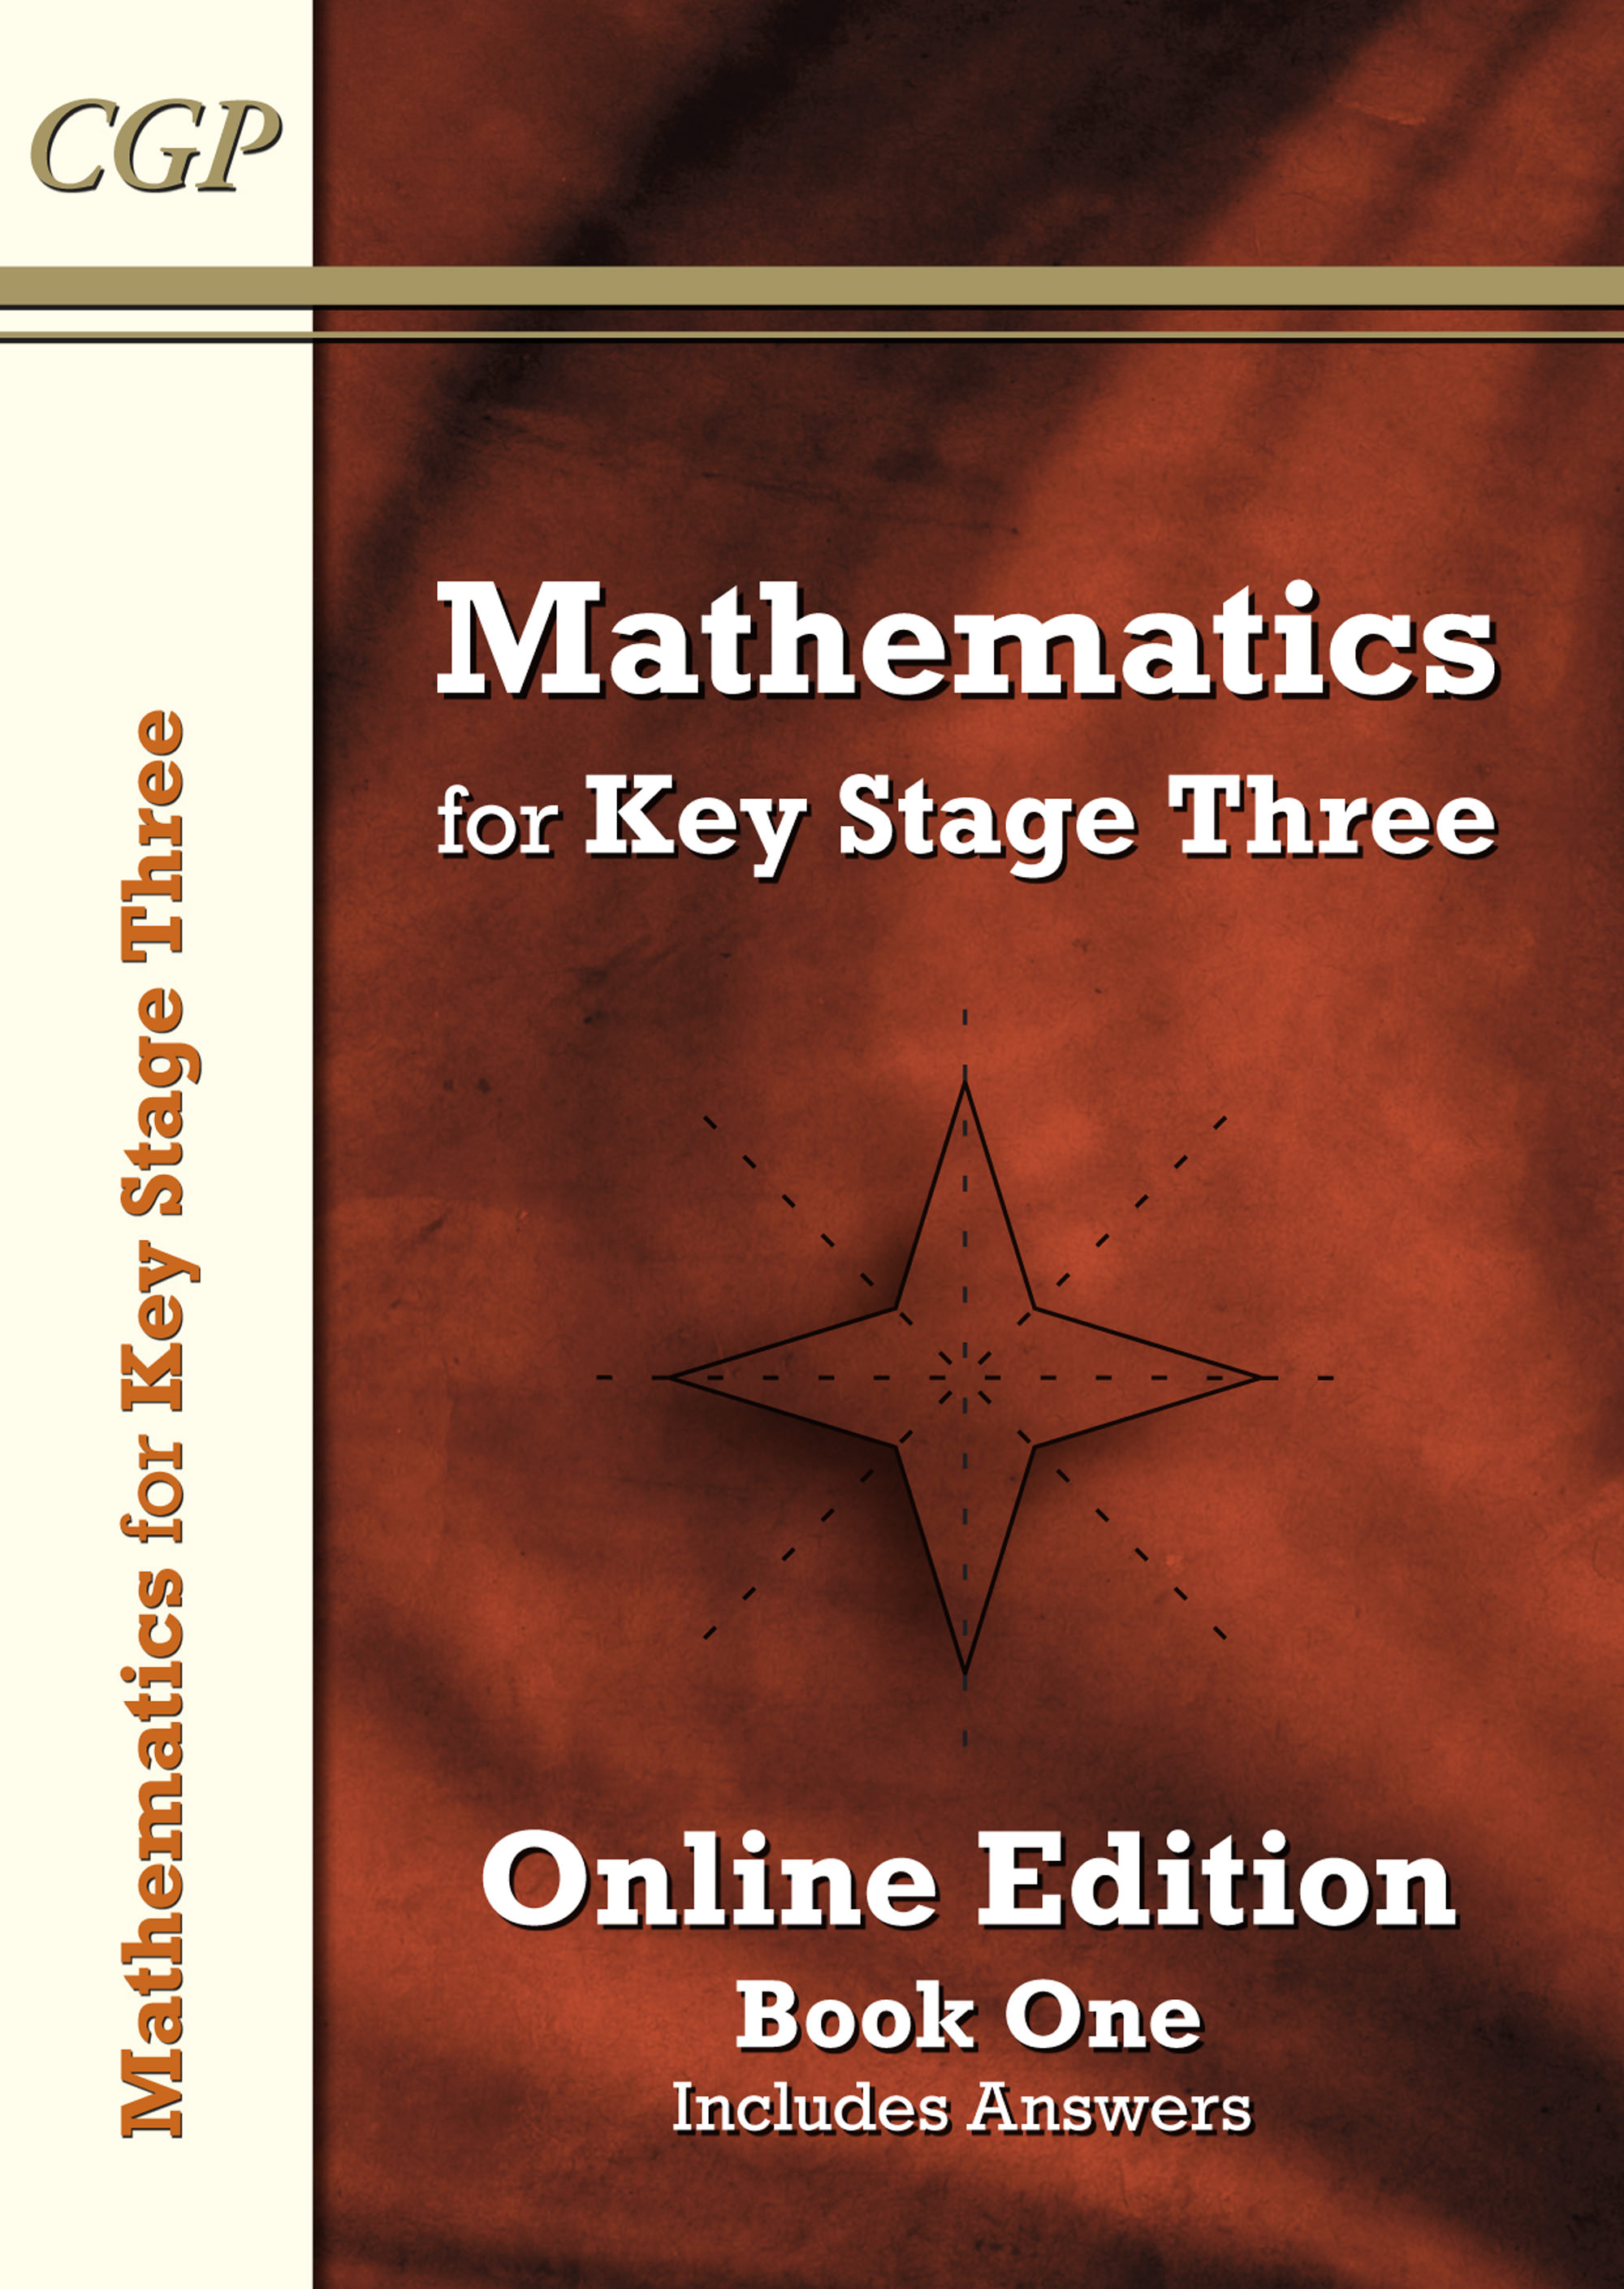 M1N31D - KS3 Maths Textbook 1: Student Online Edition (with answers)